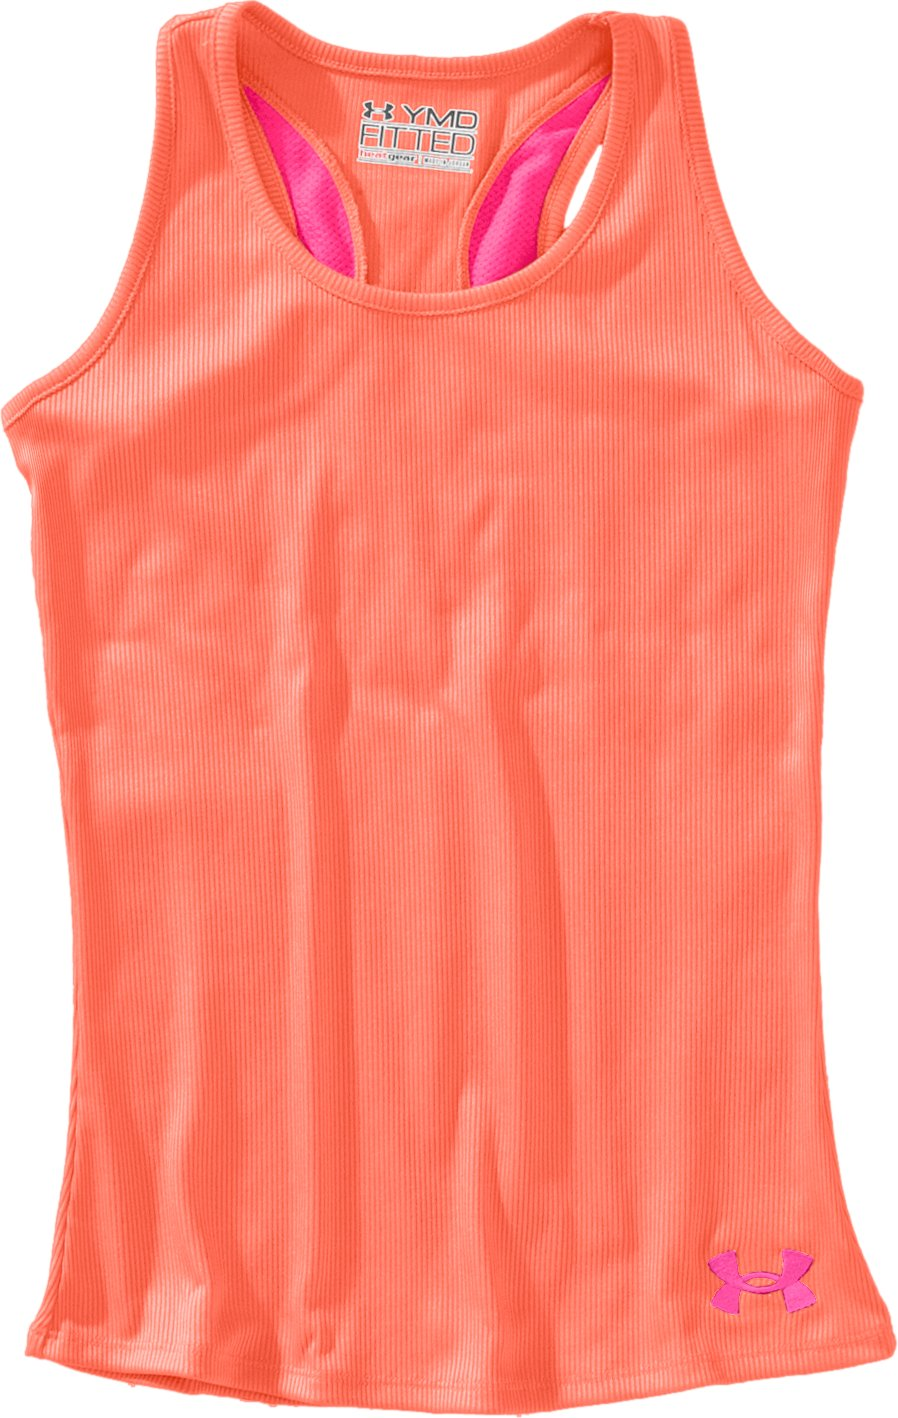 Girls' Victory Tank Top, ELECTRIC TANGERINE, Laydown